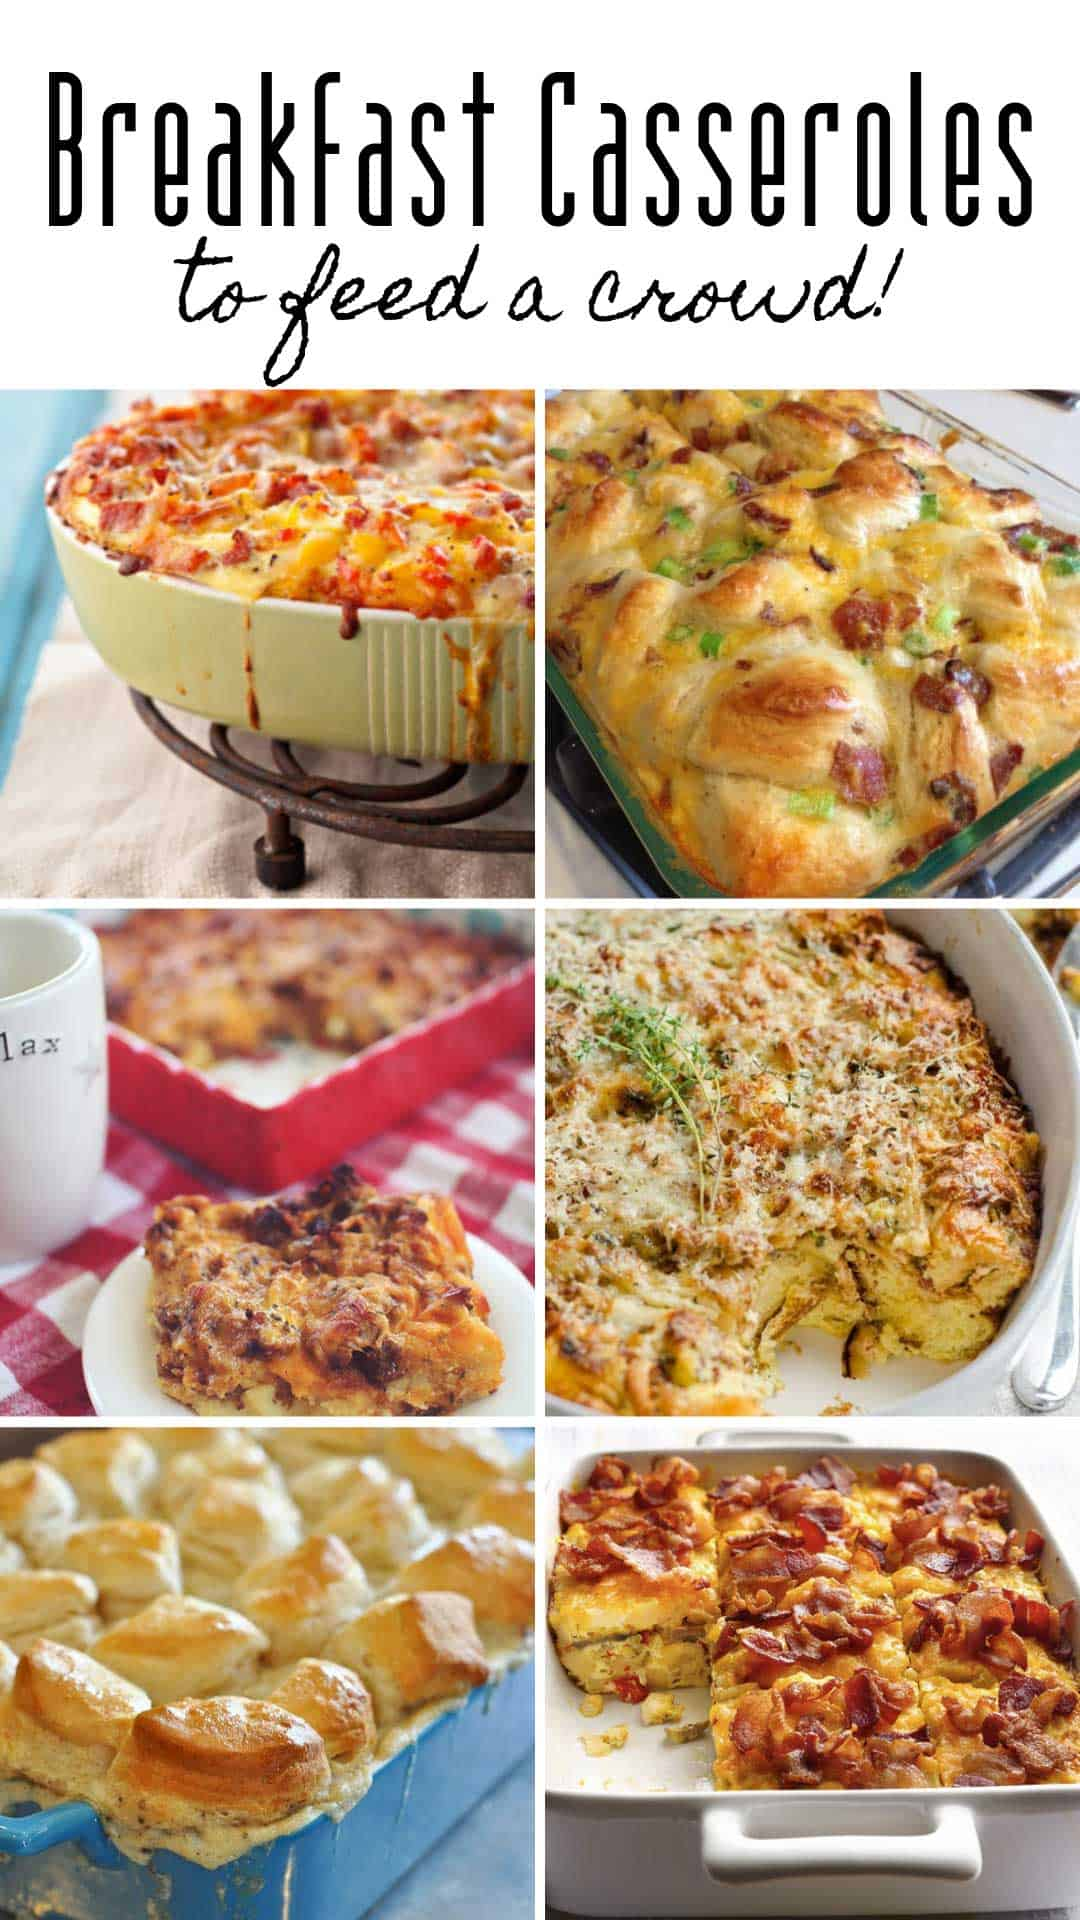 These make ahead breakfast casserole recipes are easy to make and will impress your brunch guests whatever the occasion! #breakfastcasserole #food #recipes